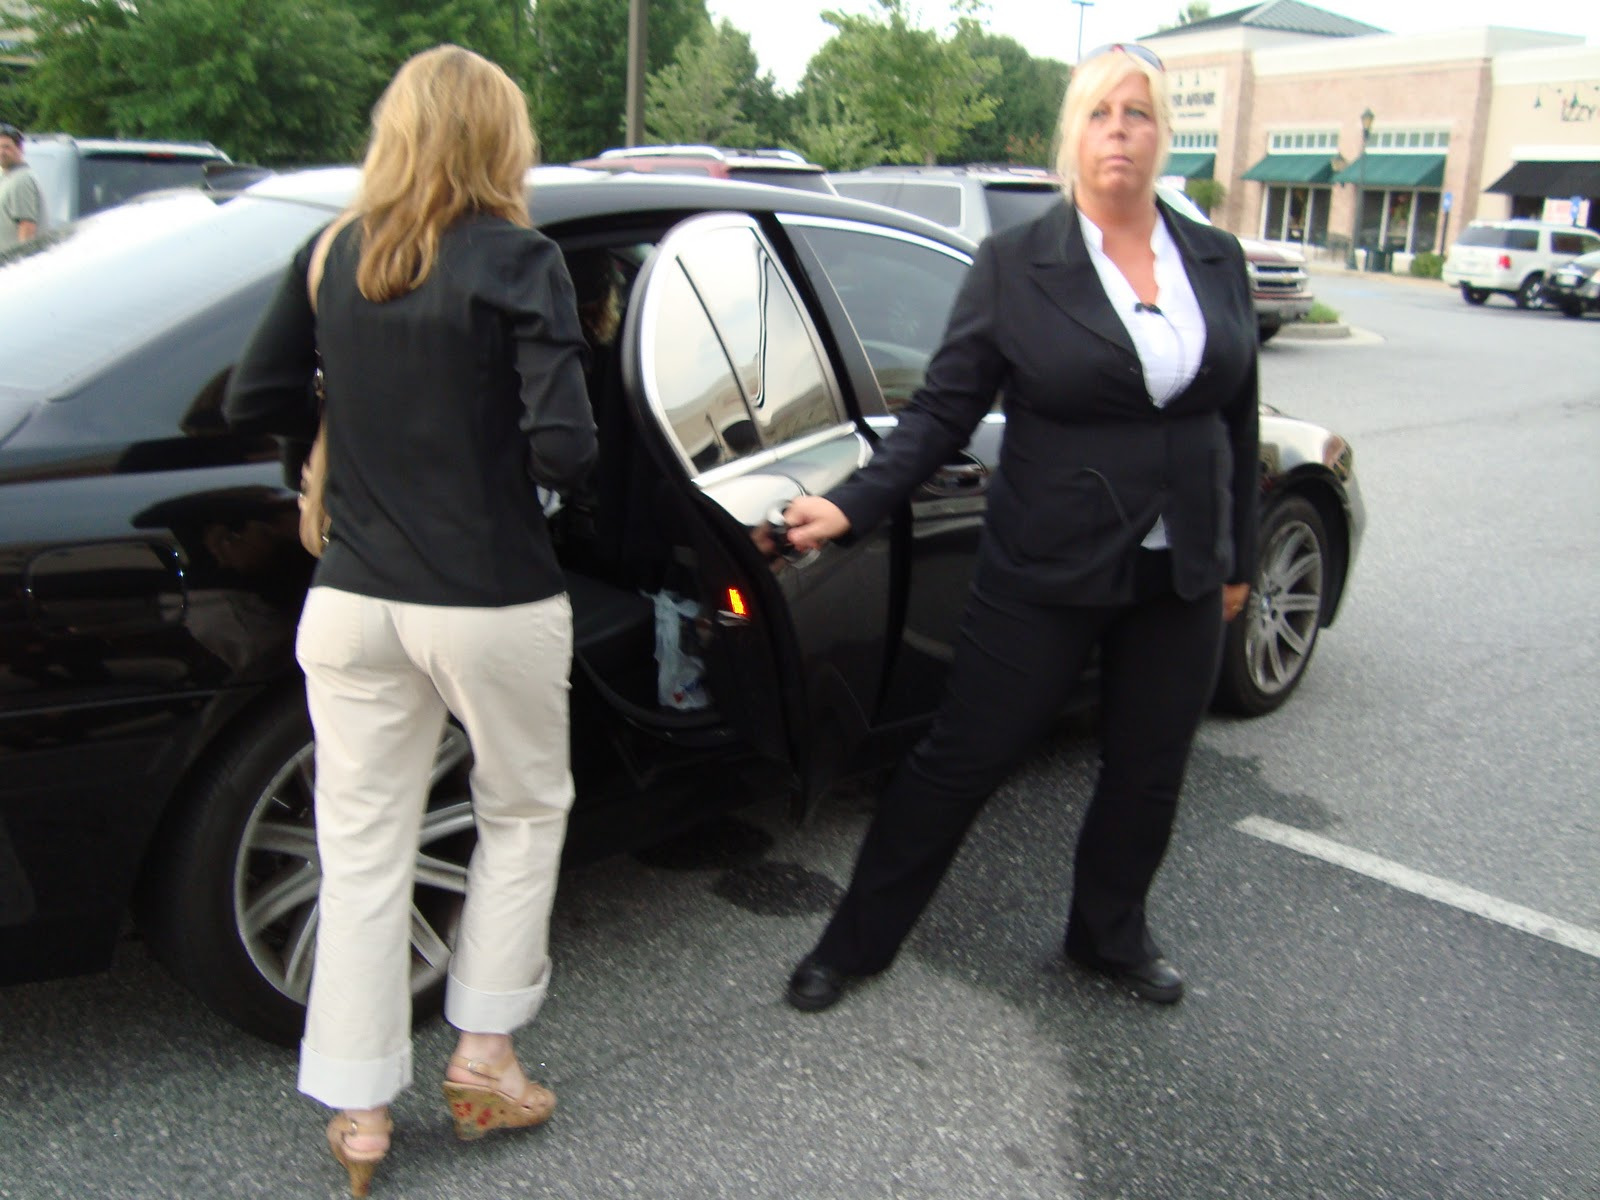 close protection Ex british military & police bodyguards, london's leading close protection  company hire bodyguards in london for your personal security & peace of  mind.